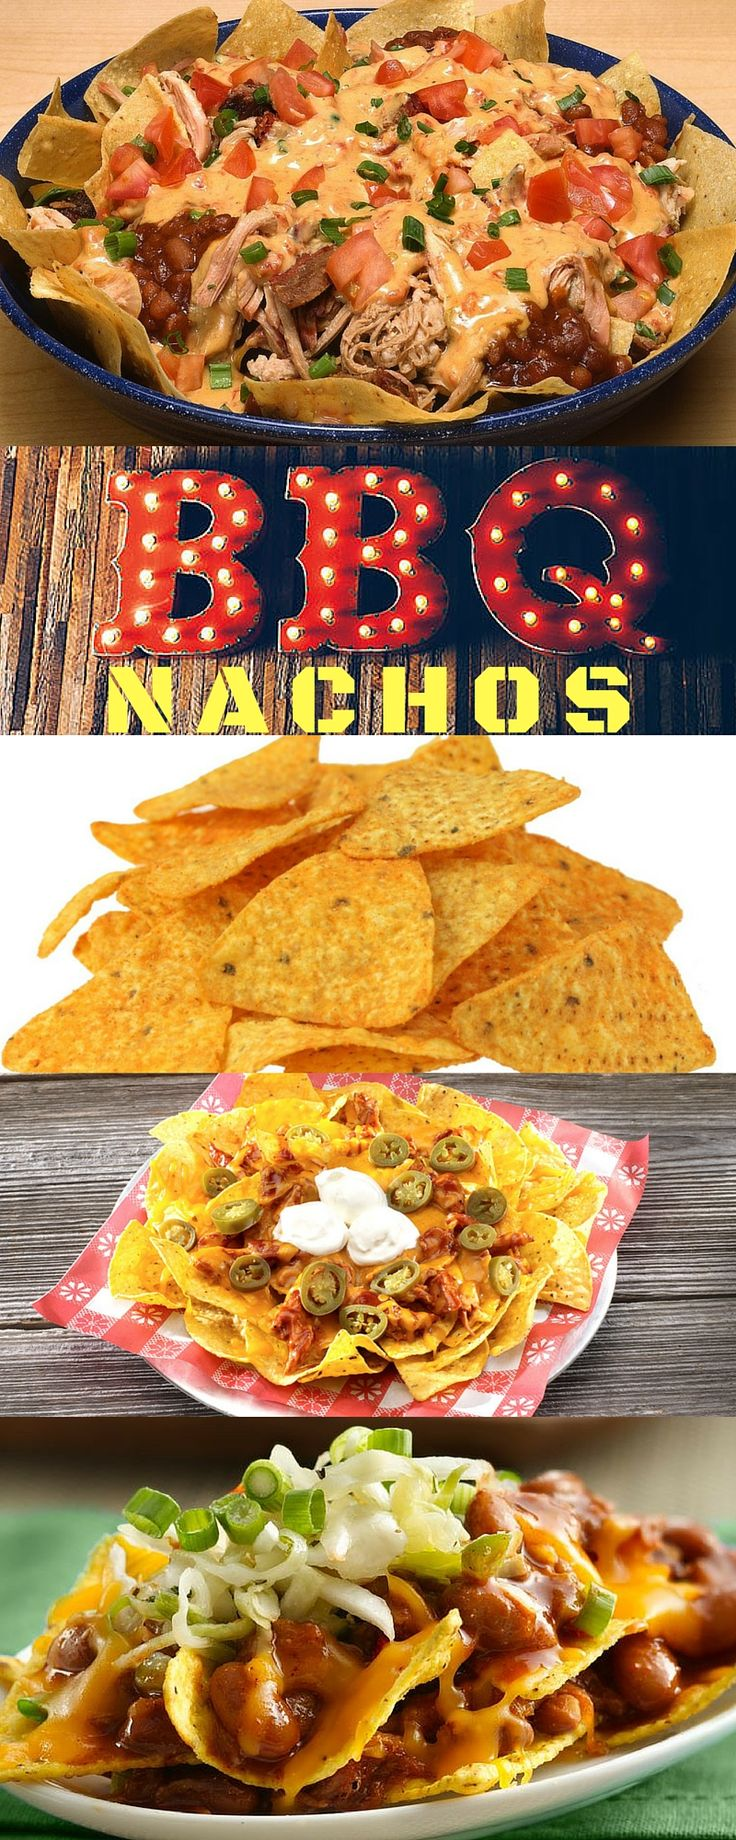 Grill Lovers' Amazing BBQ Nachos Recipe   #recipes #foodporn #foodie #grilling